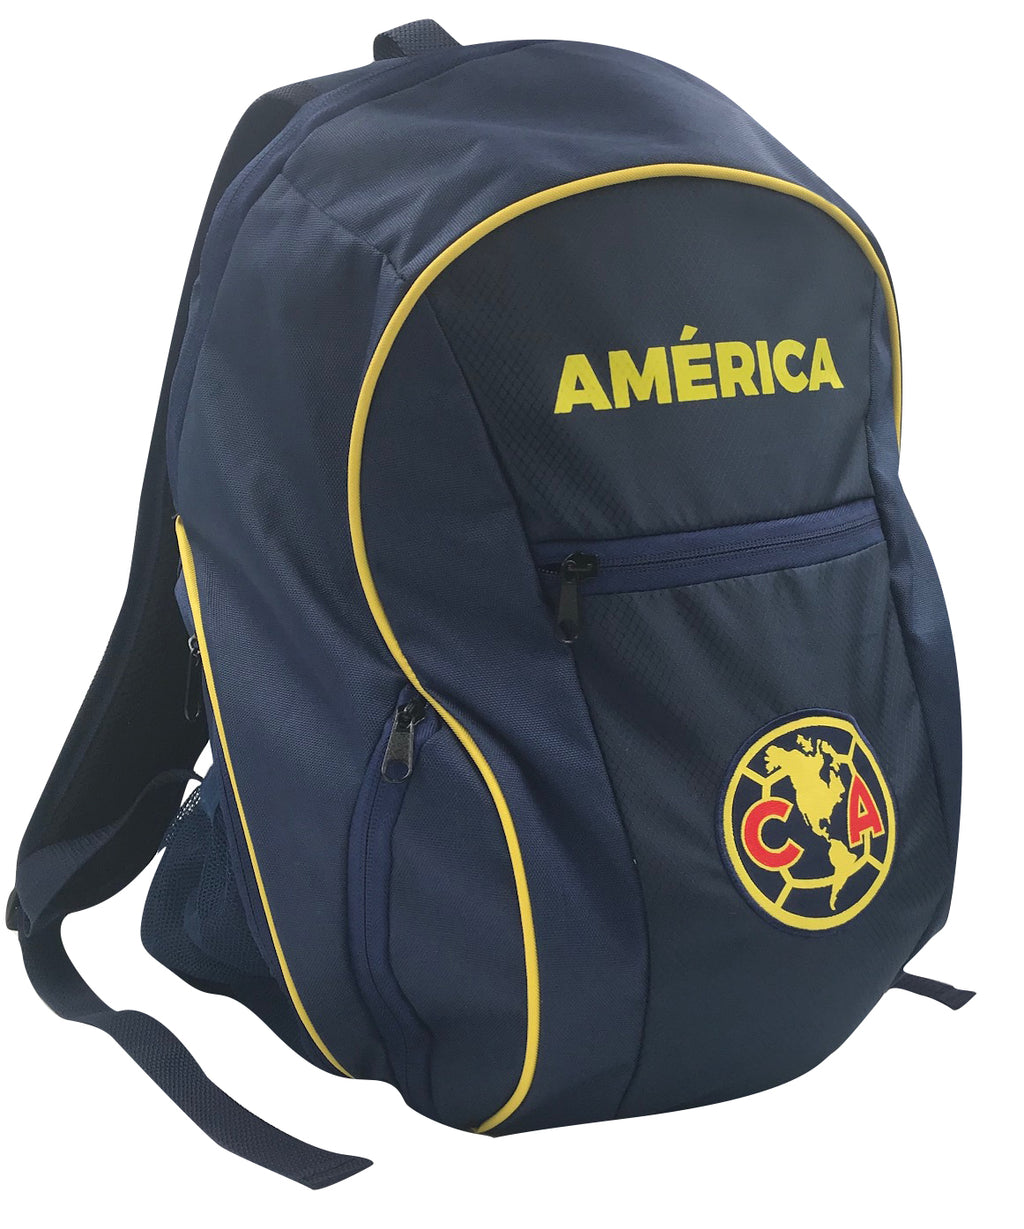 Club América Soccer Ball Backpack